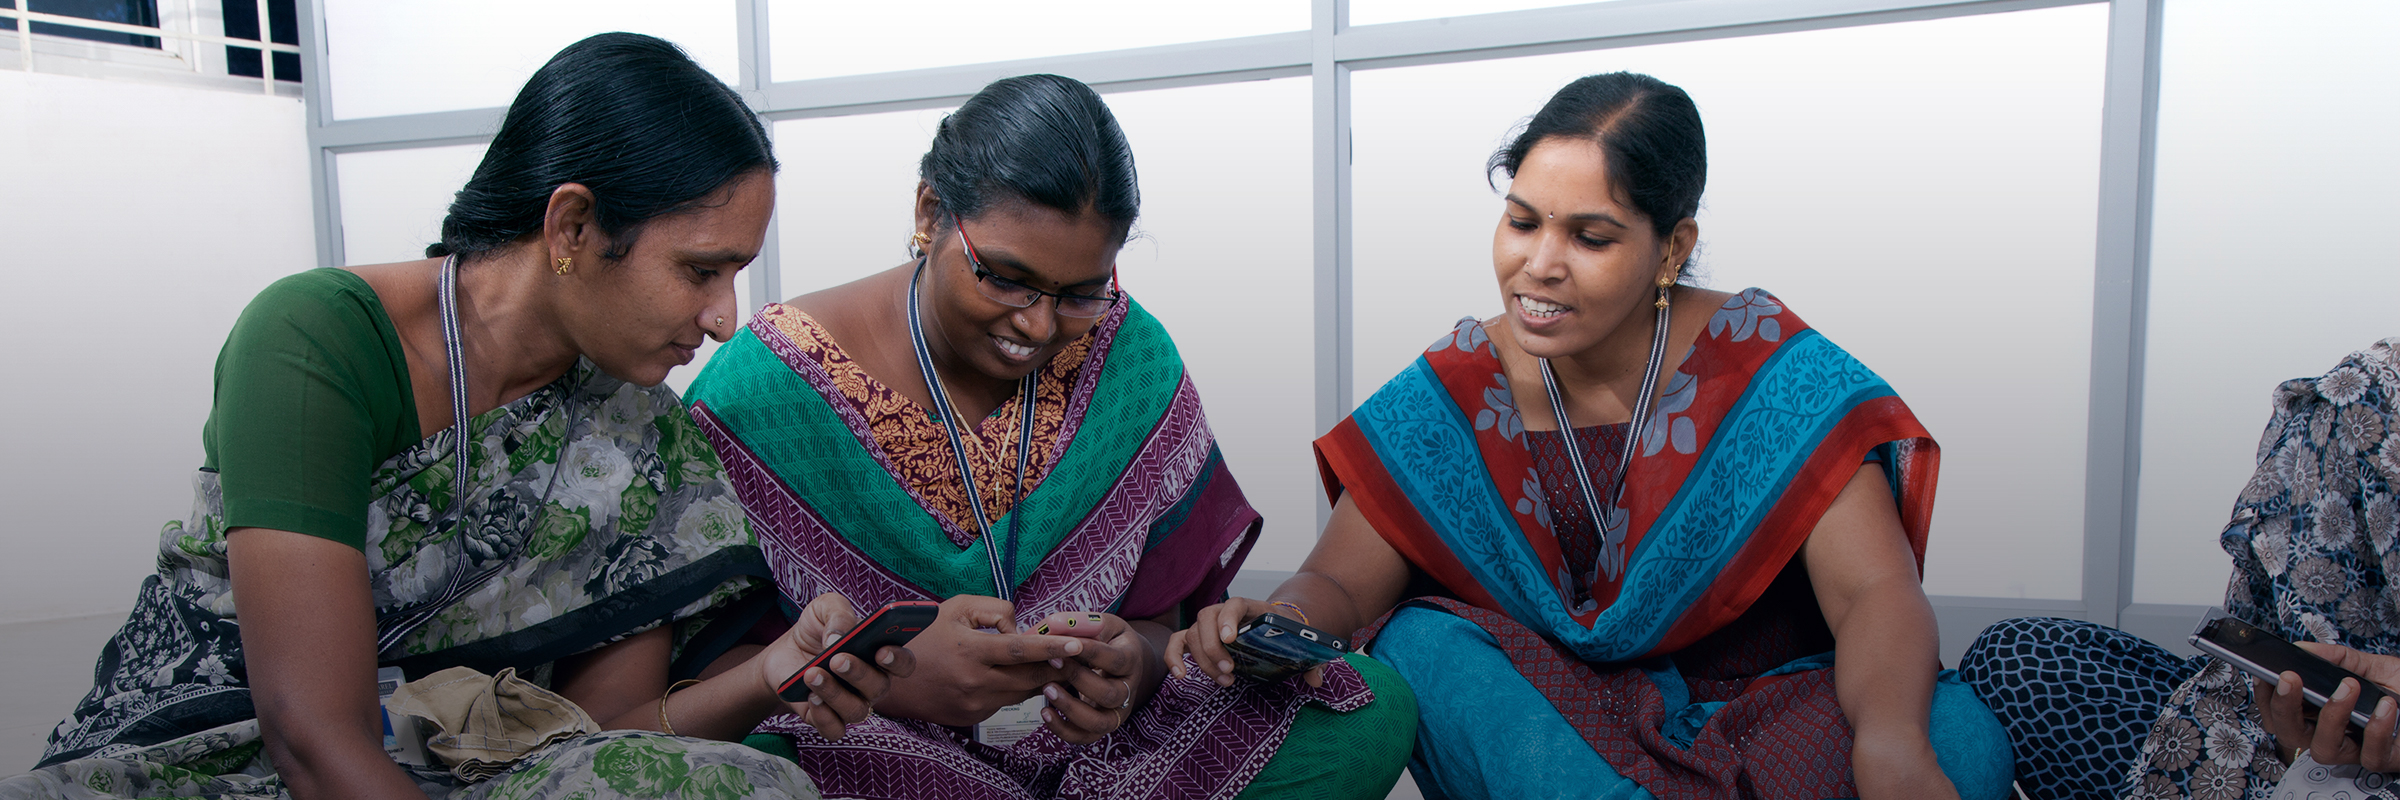 HERproject: Women's Digital Inclusion: The Risks of Going Too Fast and Not Fast Enough